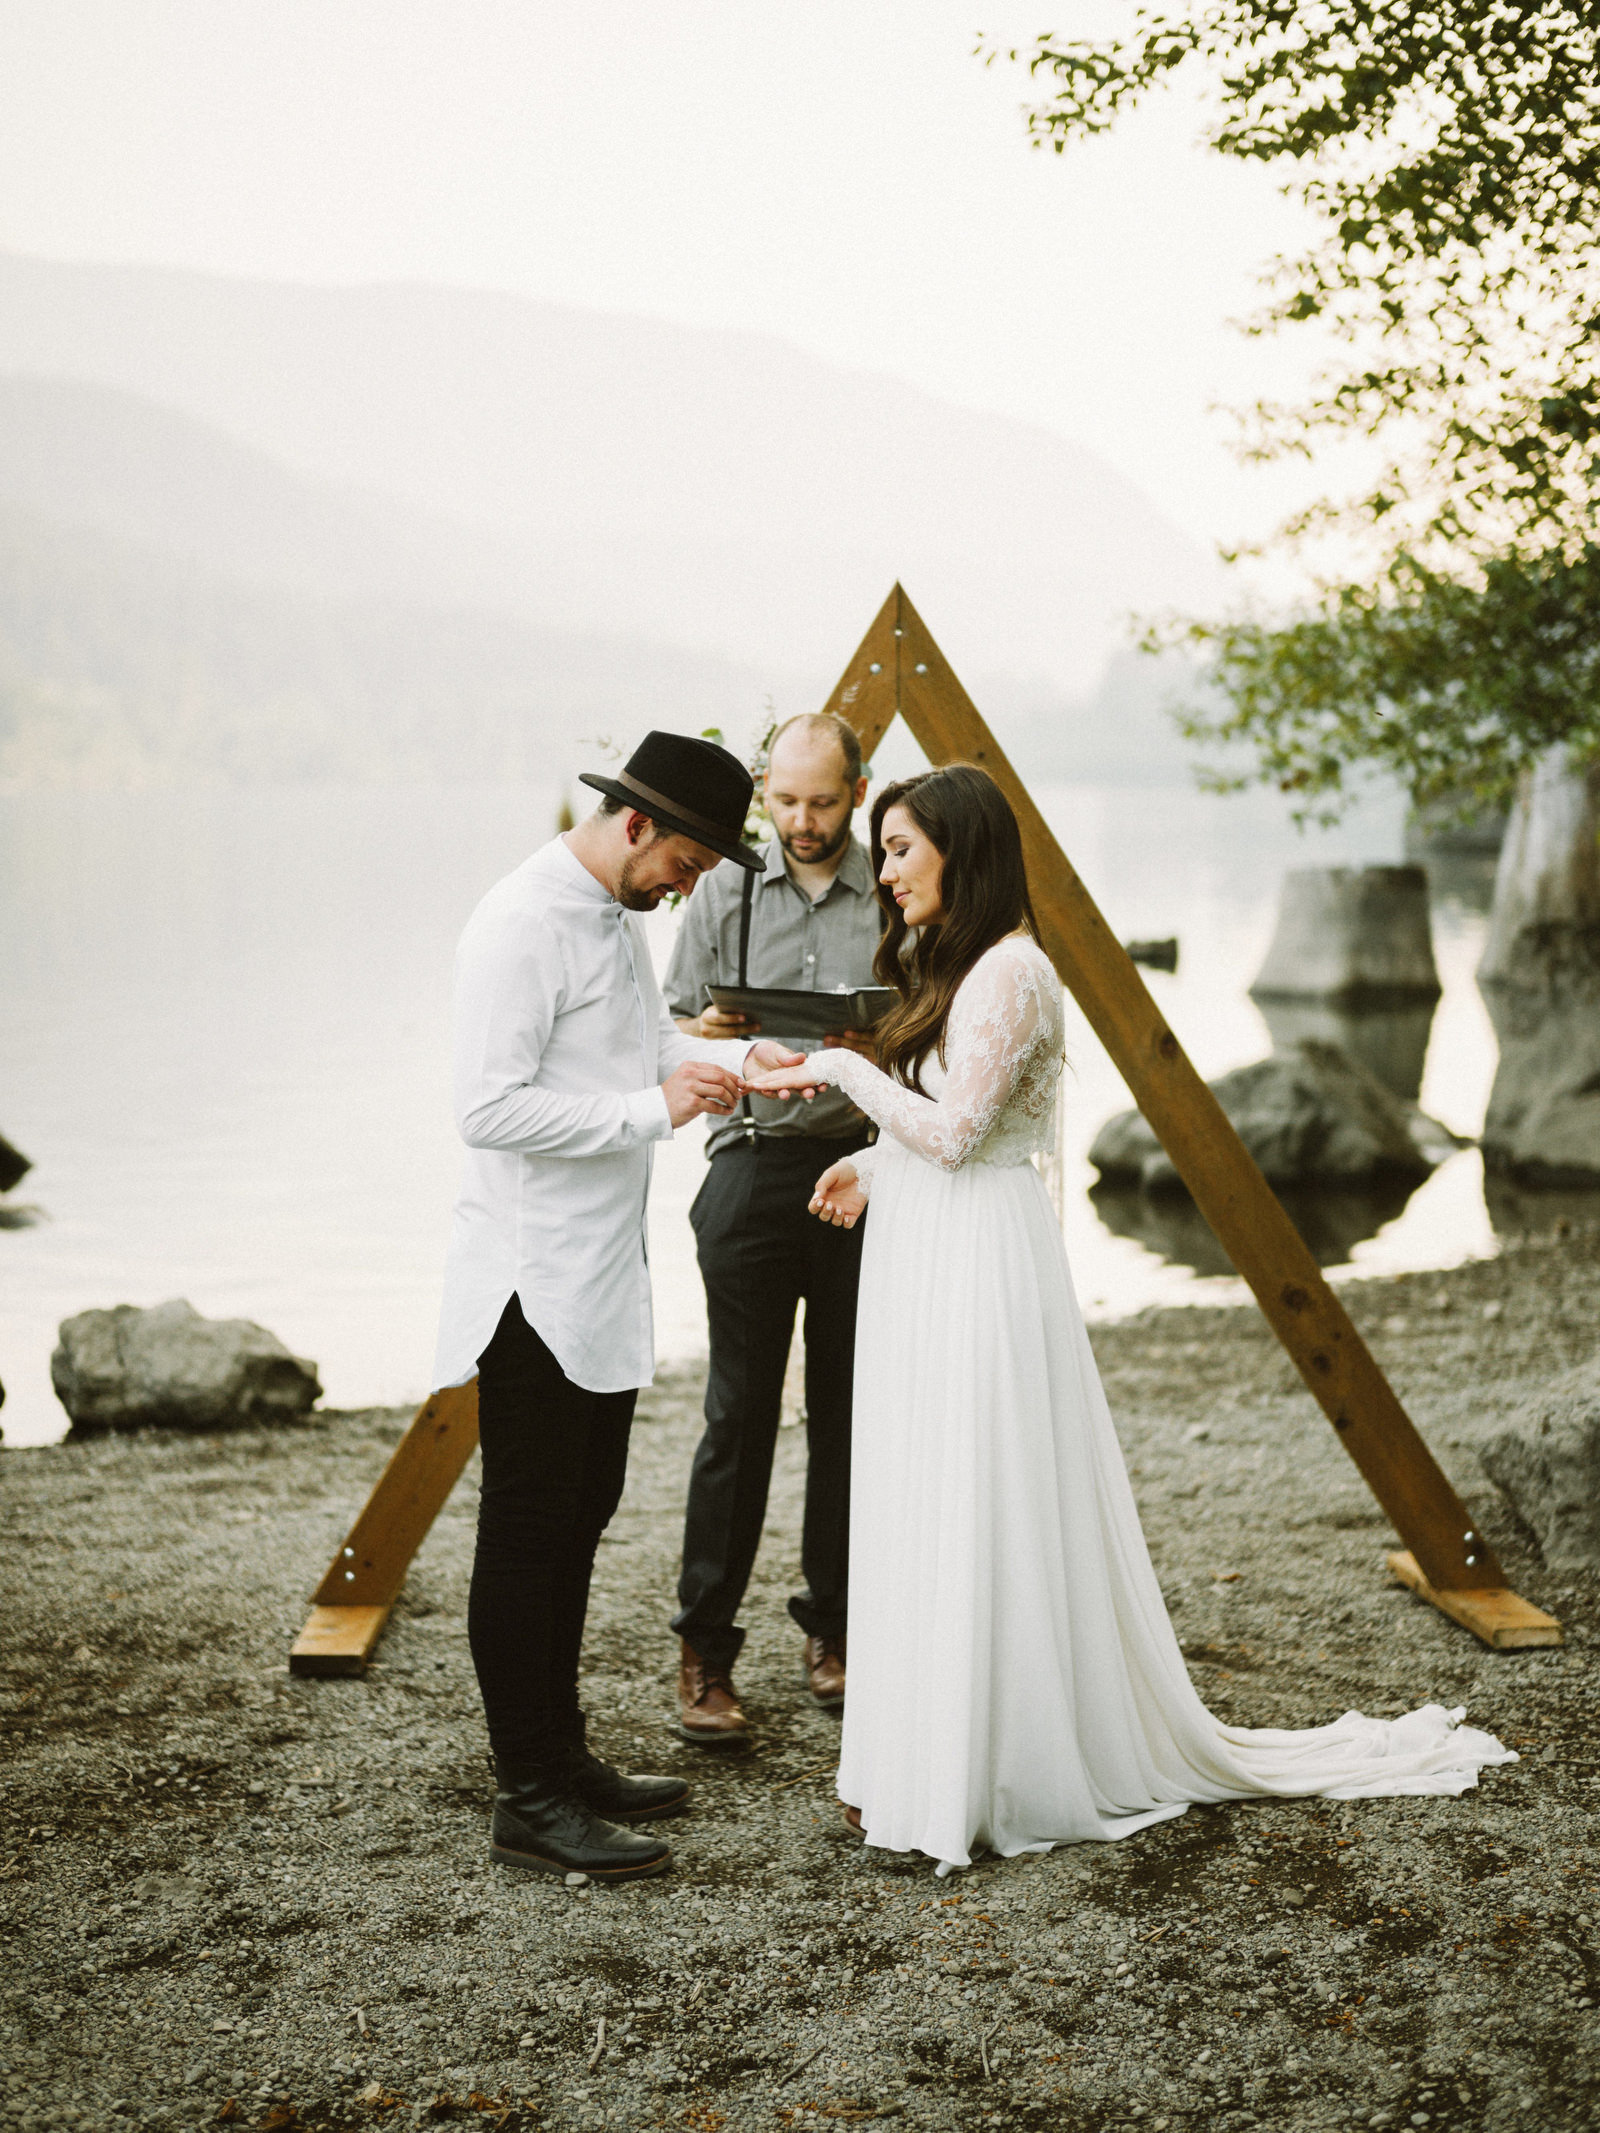 athena-and-camron-seattle-elopement-wedding-benj-haisch-rattlesnake-lake-christian-couple-goals51